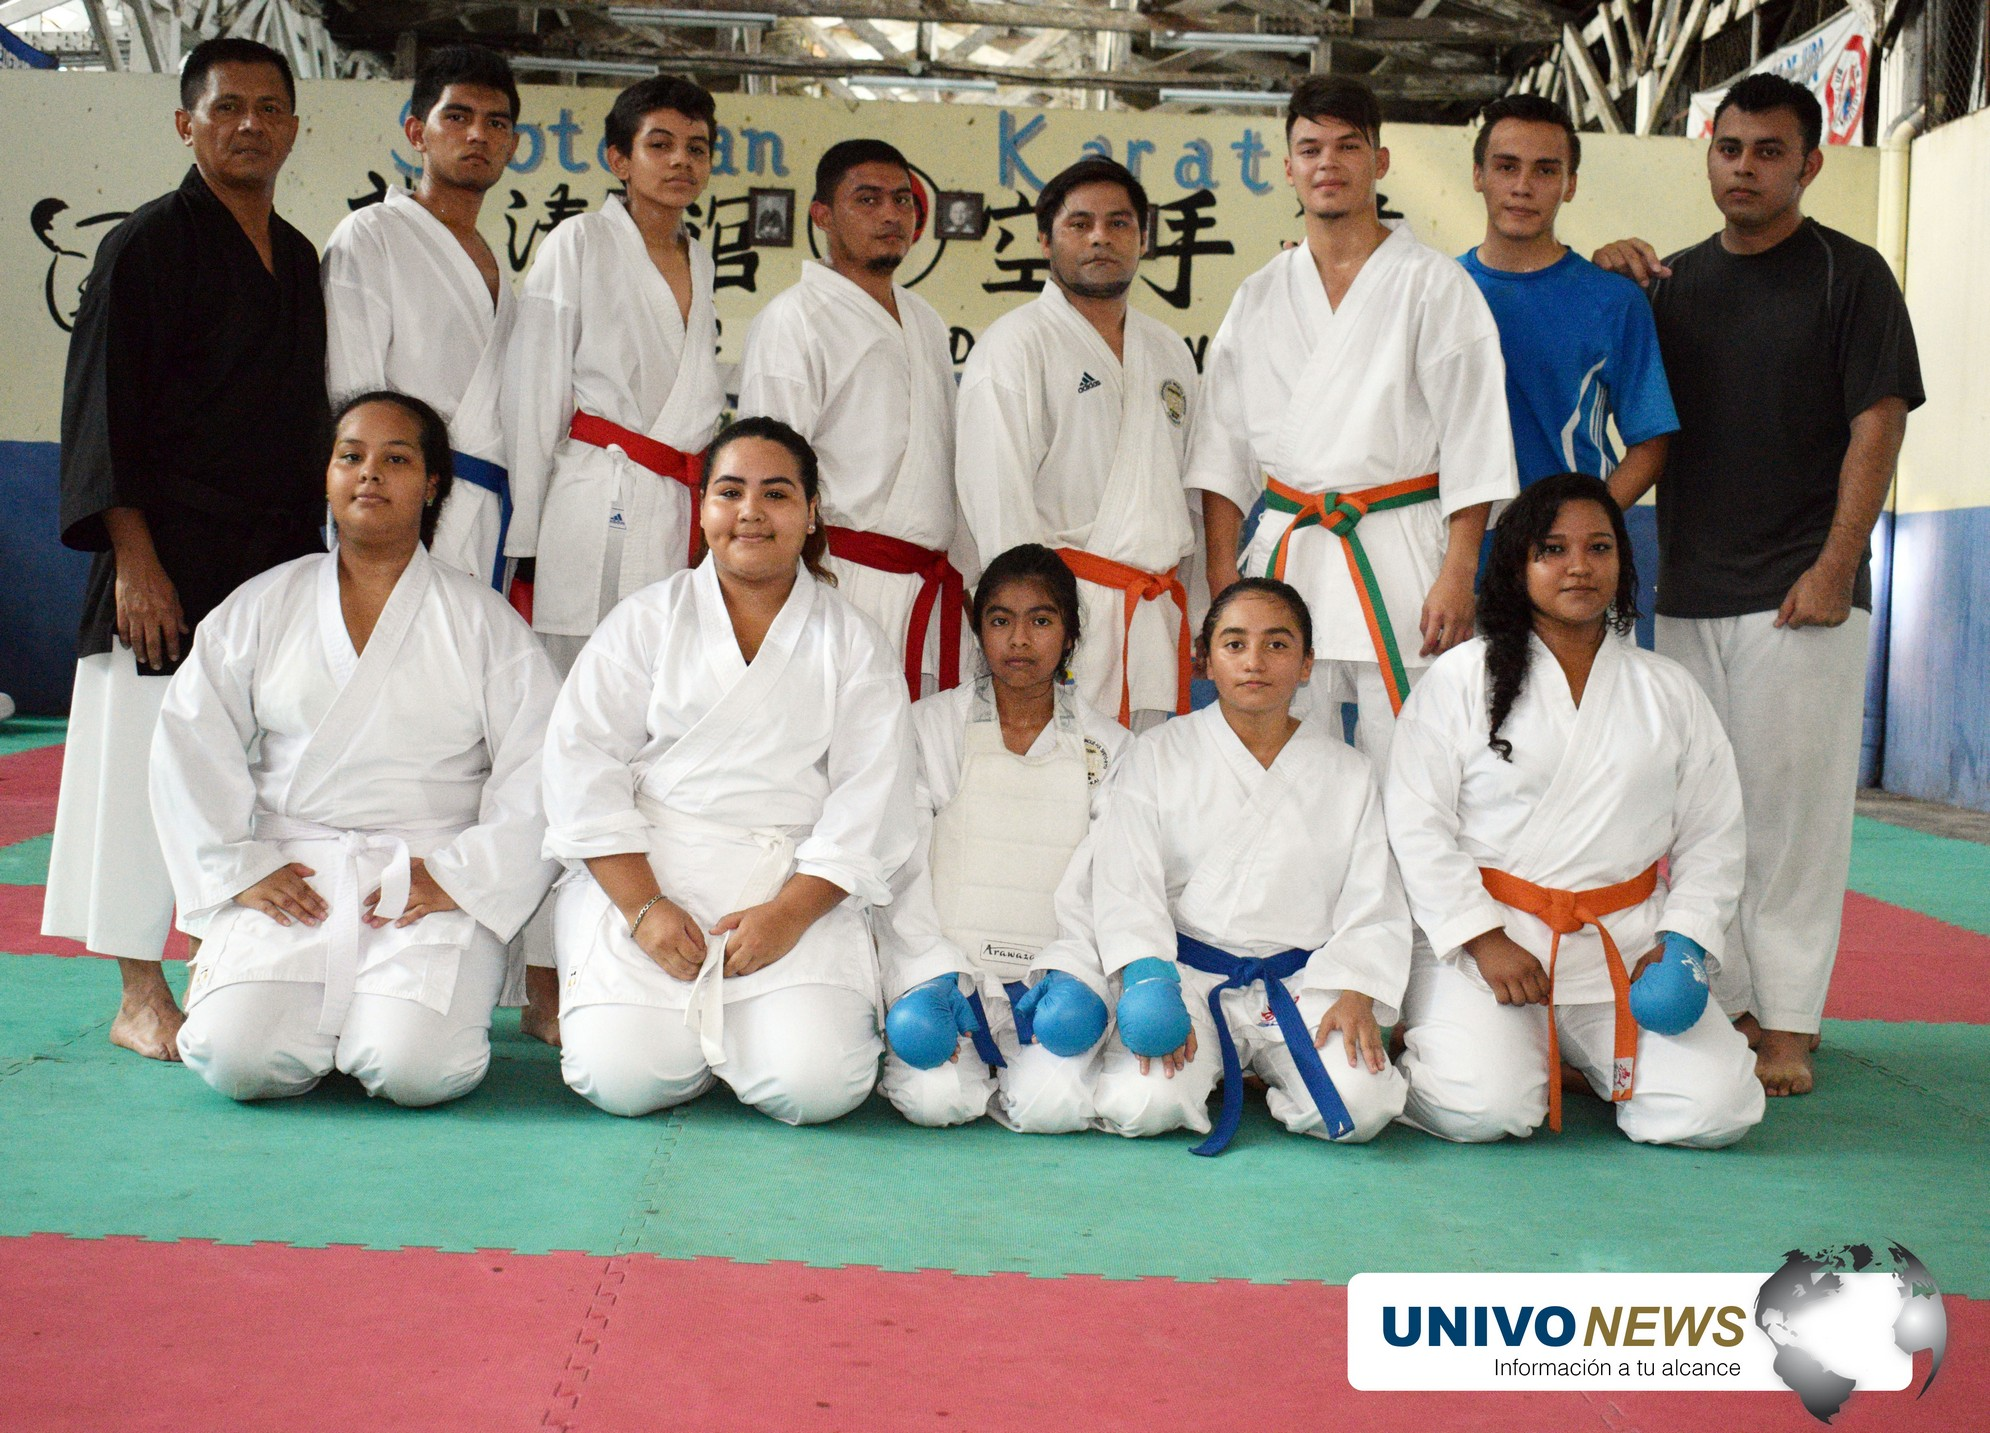 Photo of Tetracampeón de karate-do UNIVO